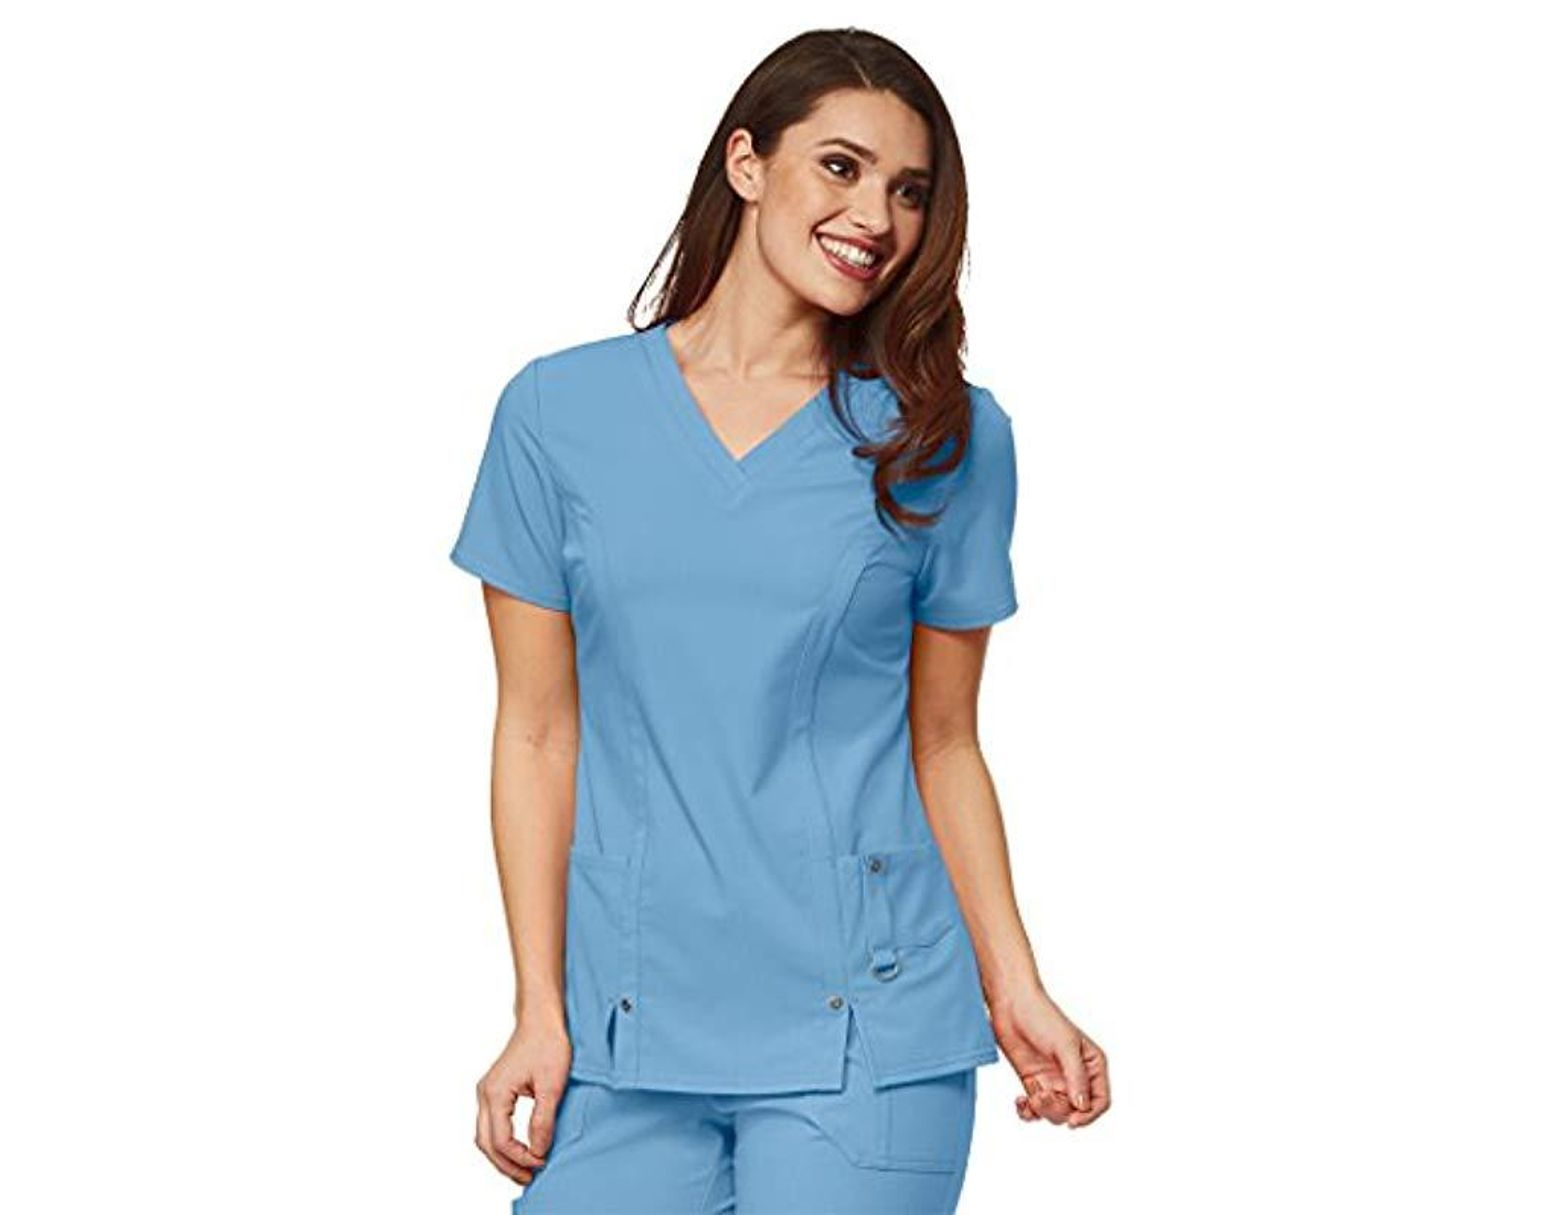 950e06a0eca54c Dickies Xtreme Stretch V-neck Scrubs Shirt in Blue - Save 26% - Lyst